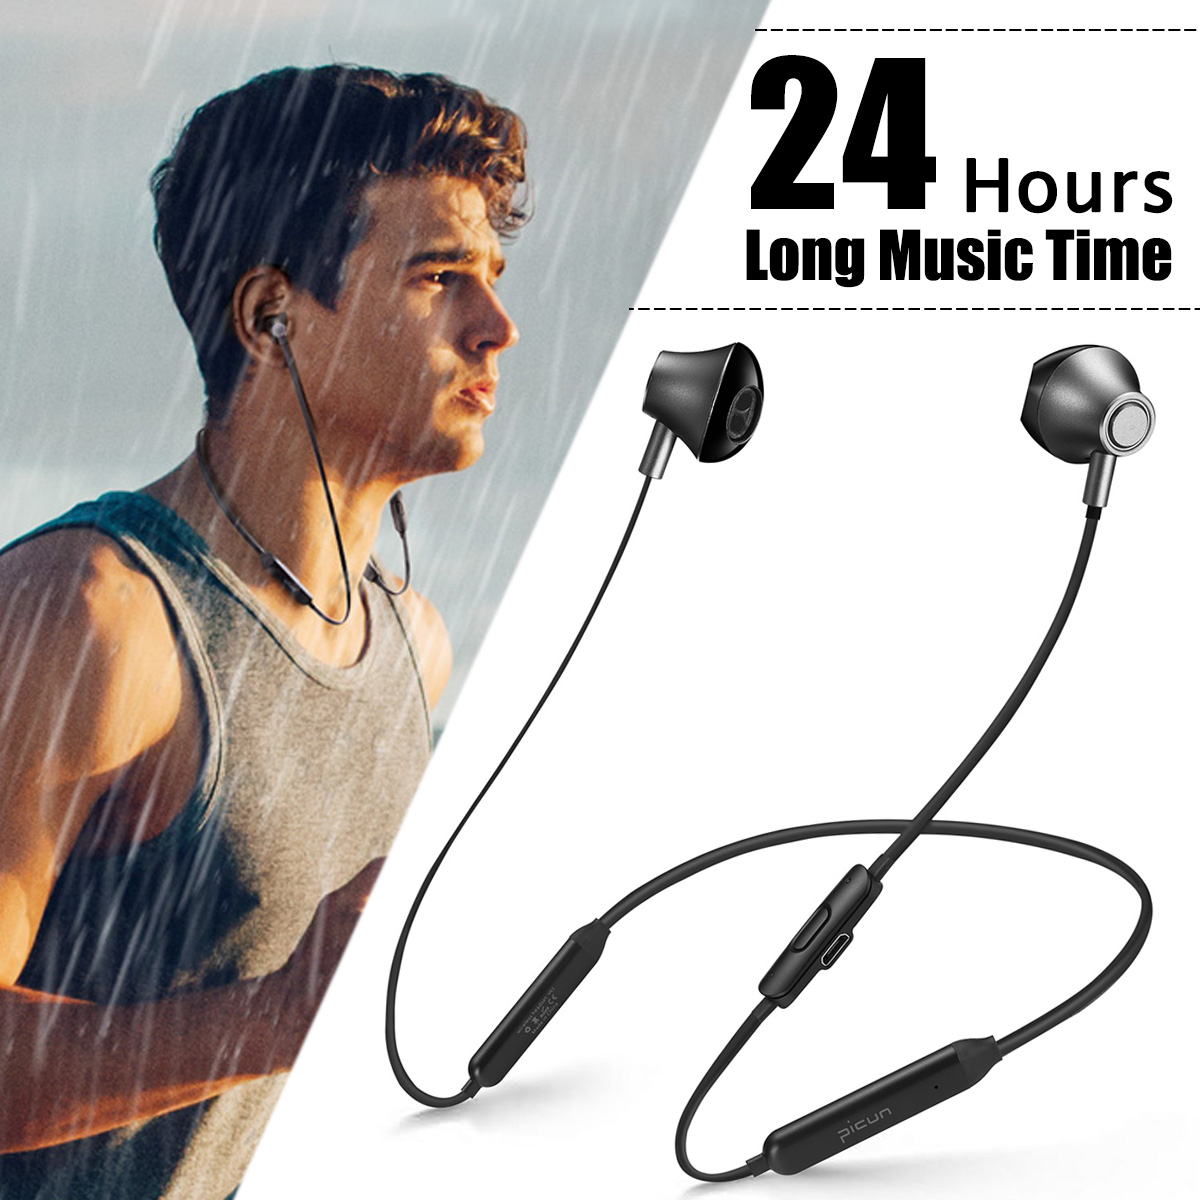 Magnetic Stereo Neckband bluetooth Earphones Sports Wireless Earbuds Headphones Headset CVC DSP Waterproof 24H Music Time